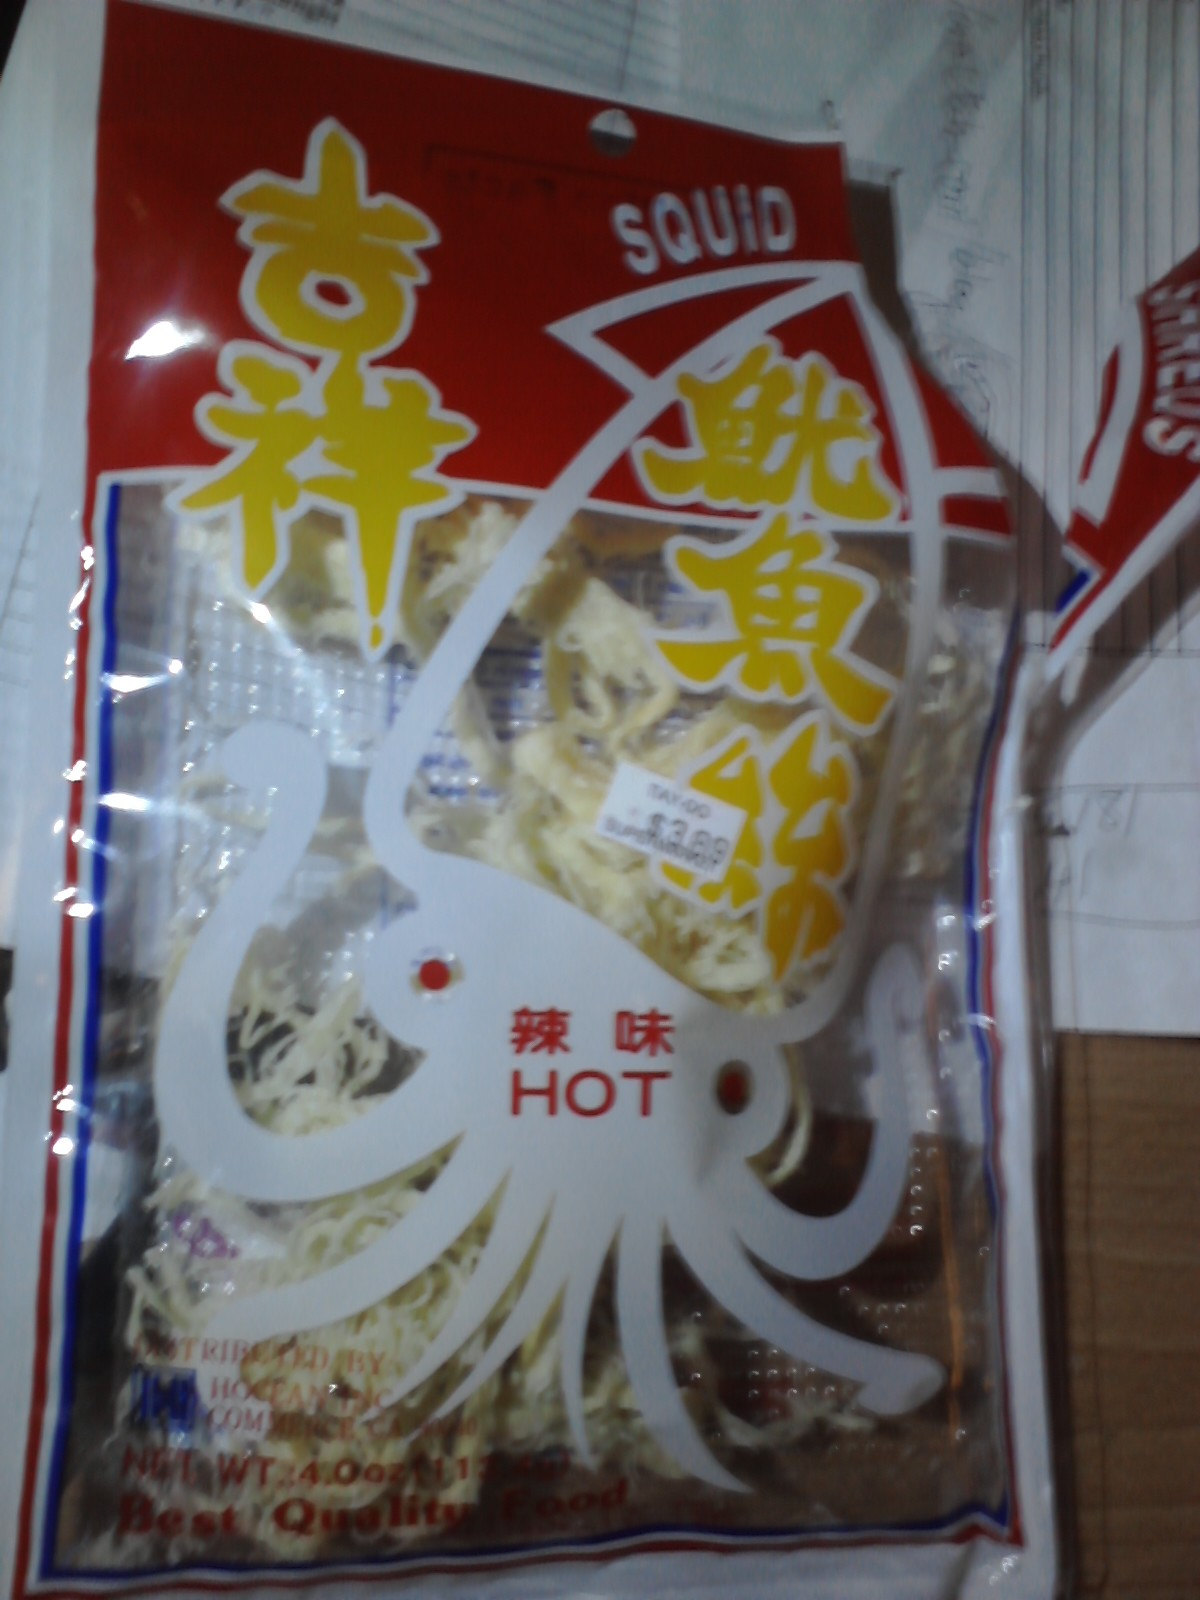 This is like jerky, except it is octopus jerky or squid and it is spicy, well you can buy the one that is not but that is not as good. My two daughters and I love this as a snack. It sounds strange but you need to try new things to appreciate them. Who knows you may love it like we do.